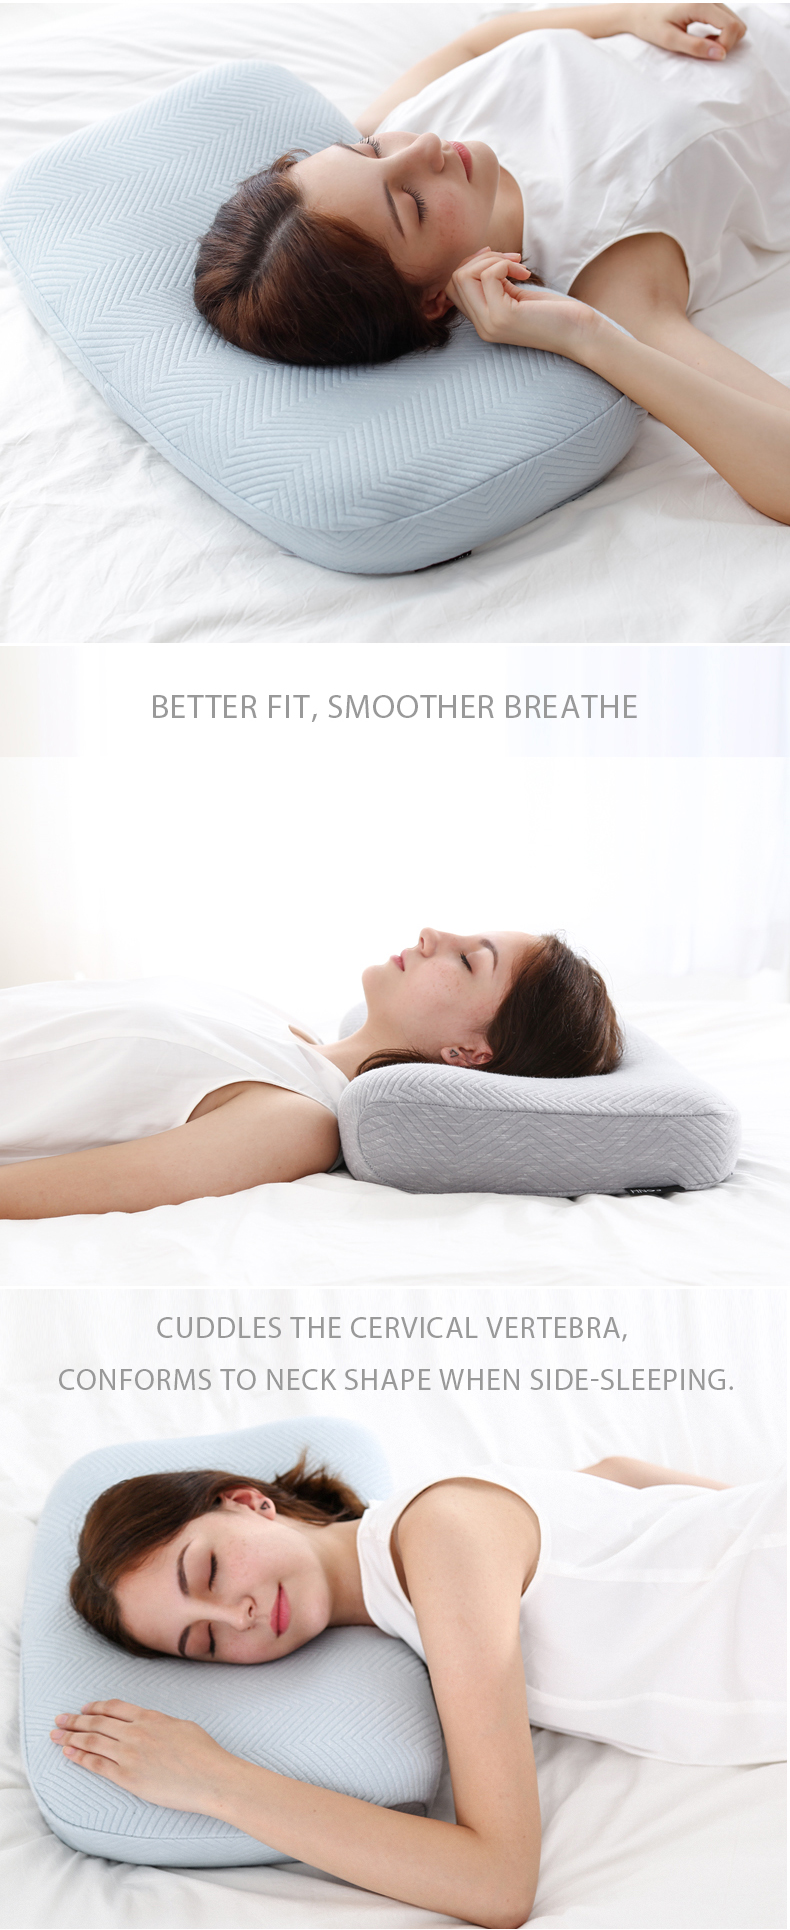 Orthopedic Hotel Hypoallergenic Bamboo Charcoal Bed Rest Anti Wrinkle Cervical Contour Sleep Memory Foam Pillow Health